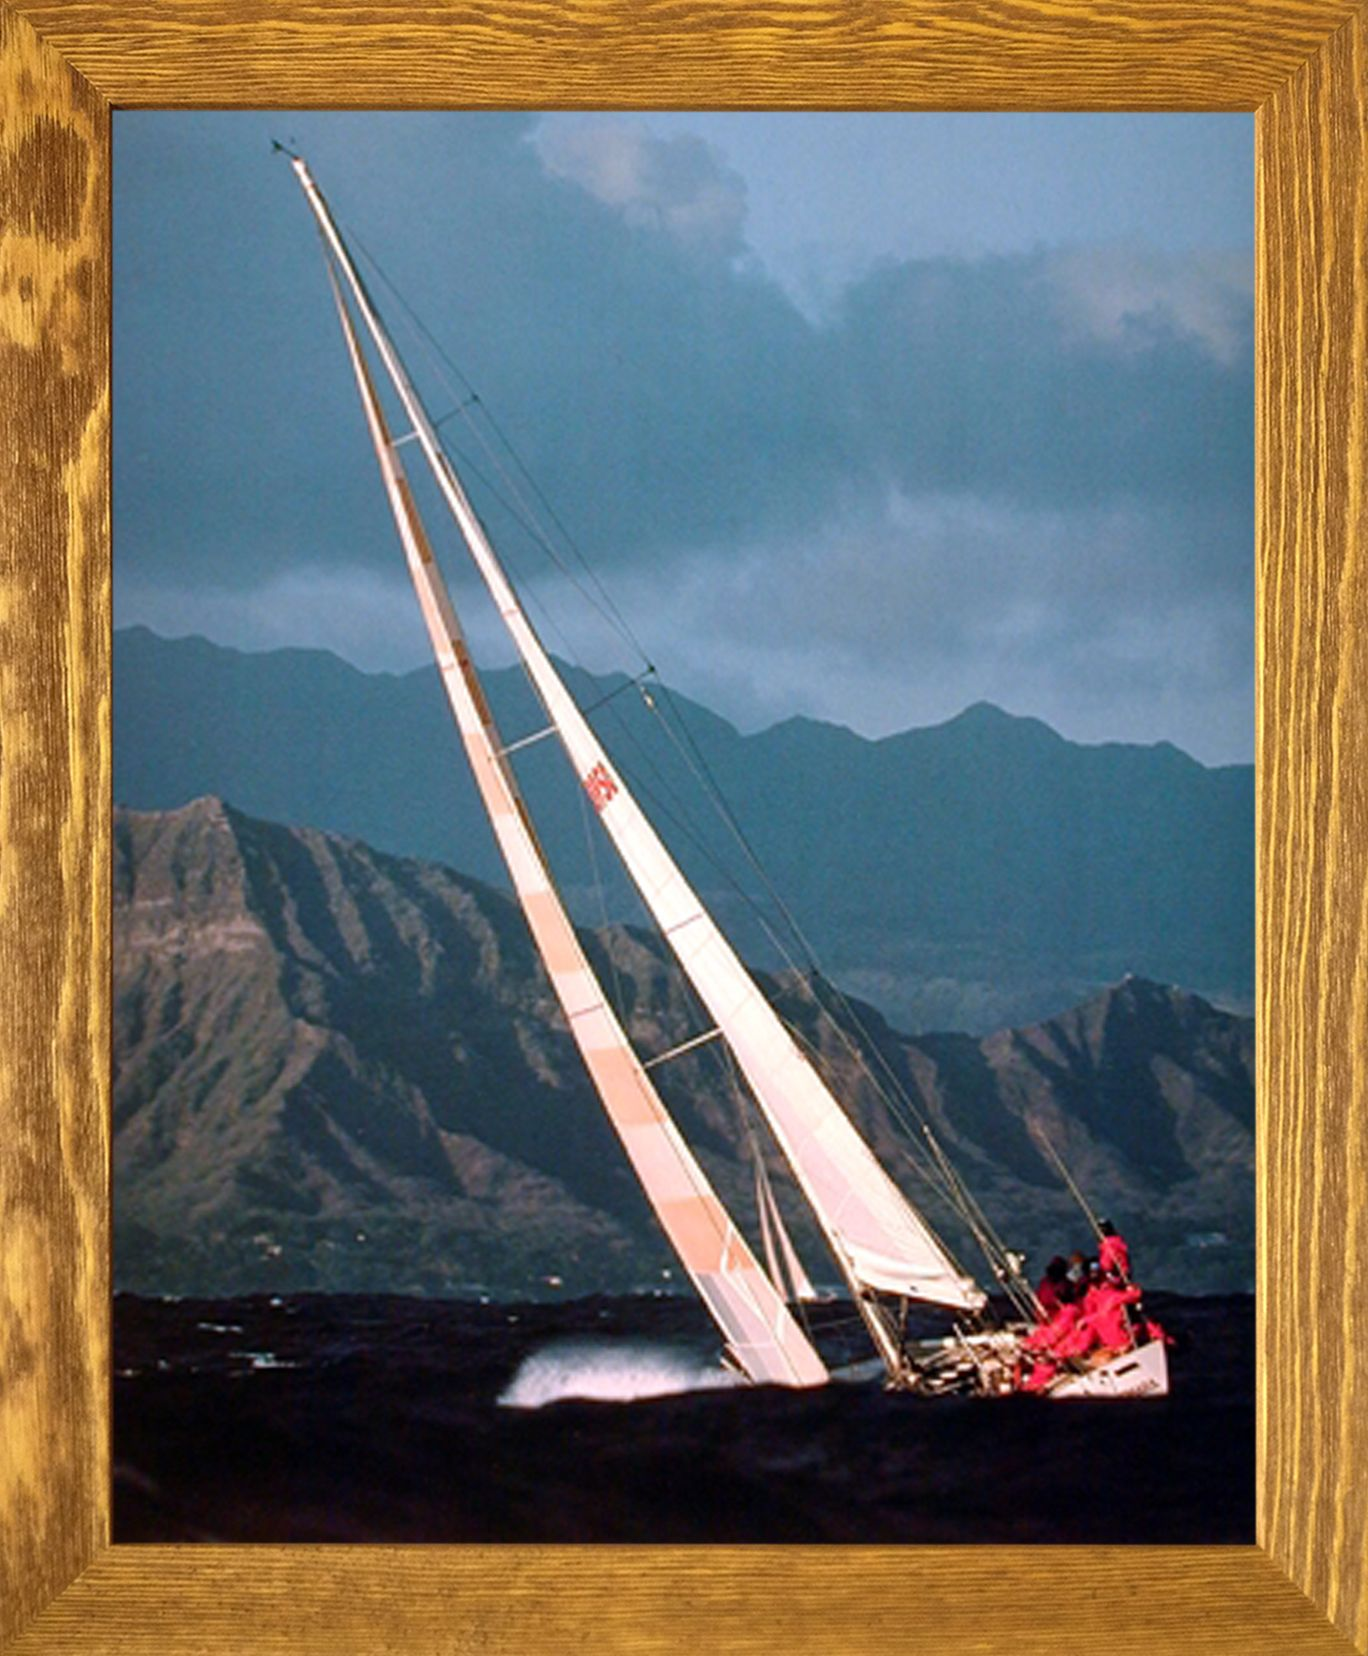 14 Ship Sailboat Framed Art Pictures Ideas Framed Art Boat Wall Decor Poster Prints